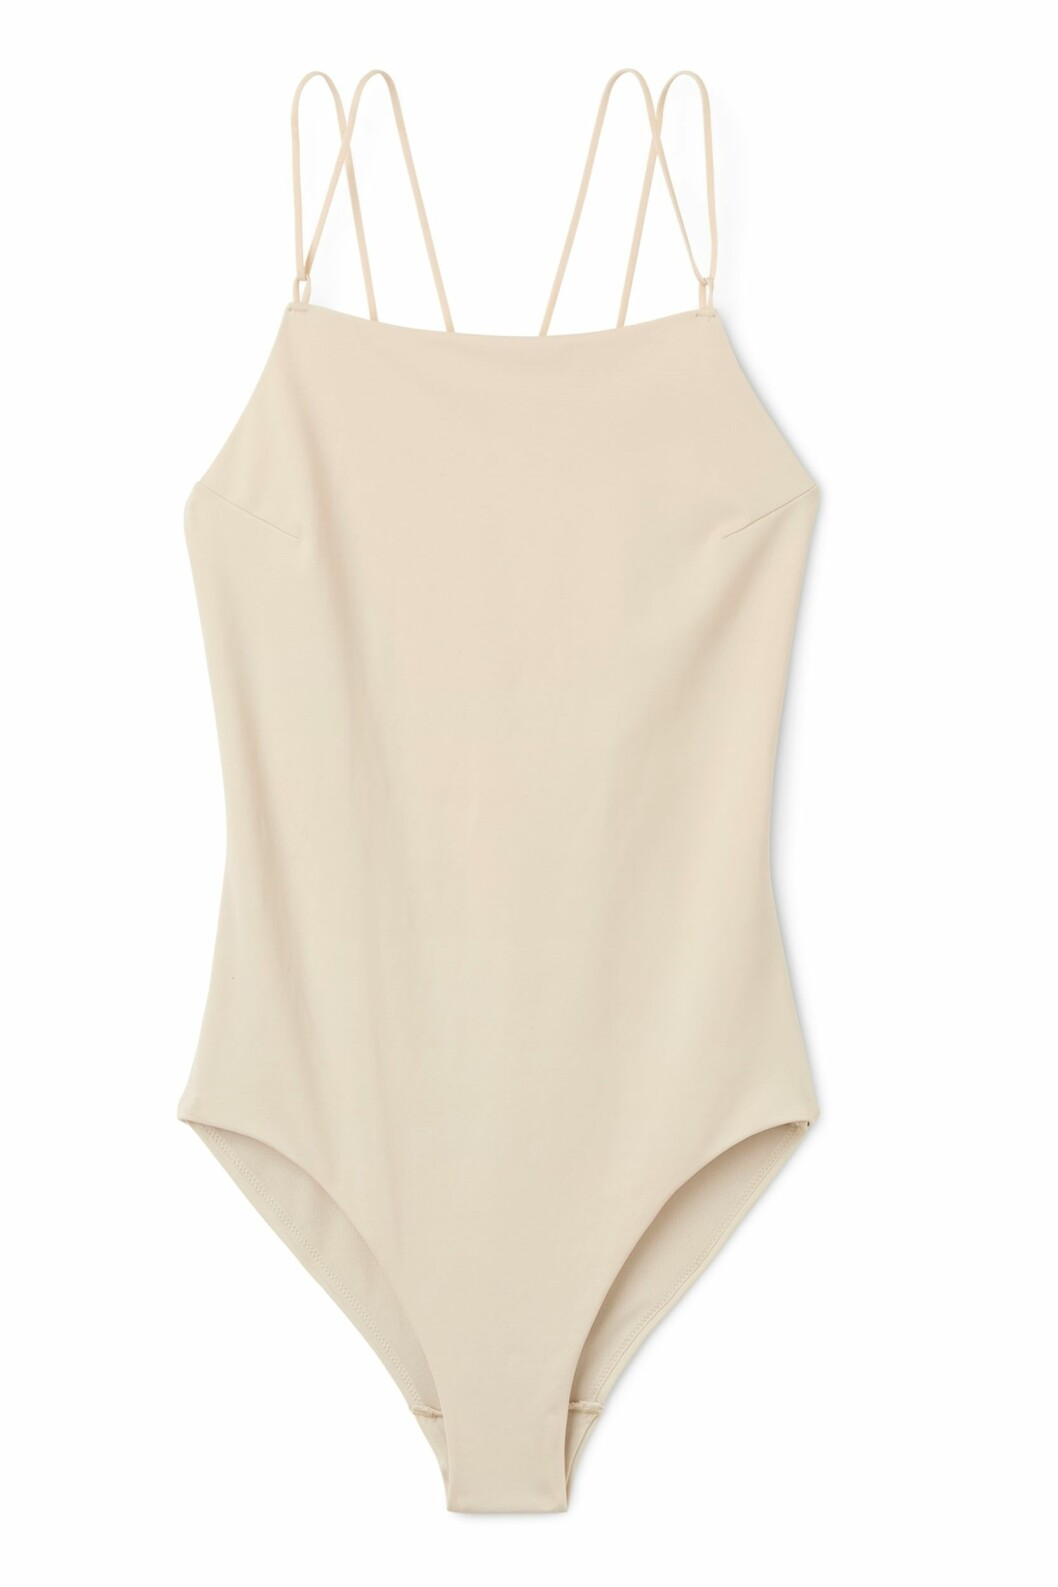 <strong>Badedrakt fra Weekday | kr 250 | http:</strong>//shop.weekday.com/se/Womens_shop/Swimwear/All/Pangea_swimsuit/8278058-14033599.1#c-49929#Rel?PC=